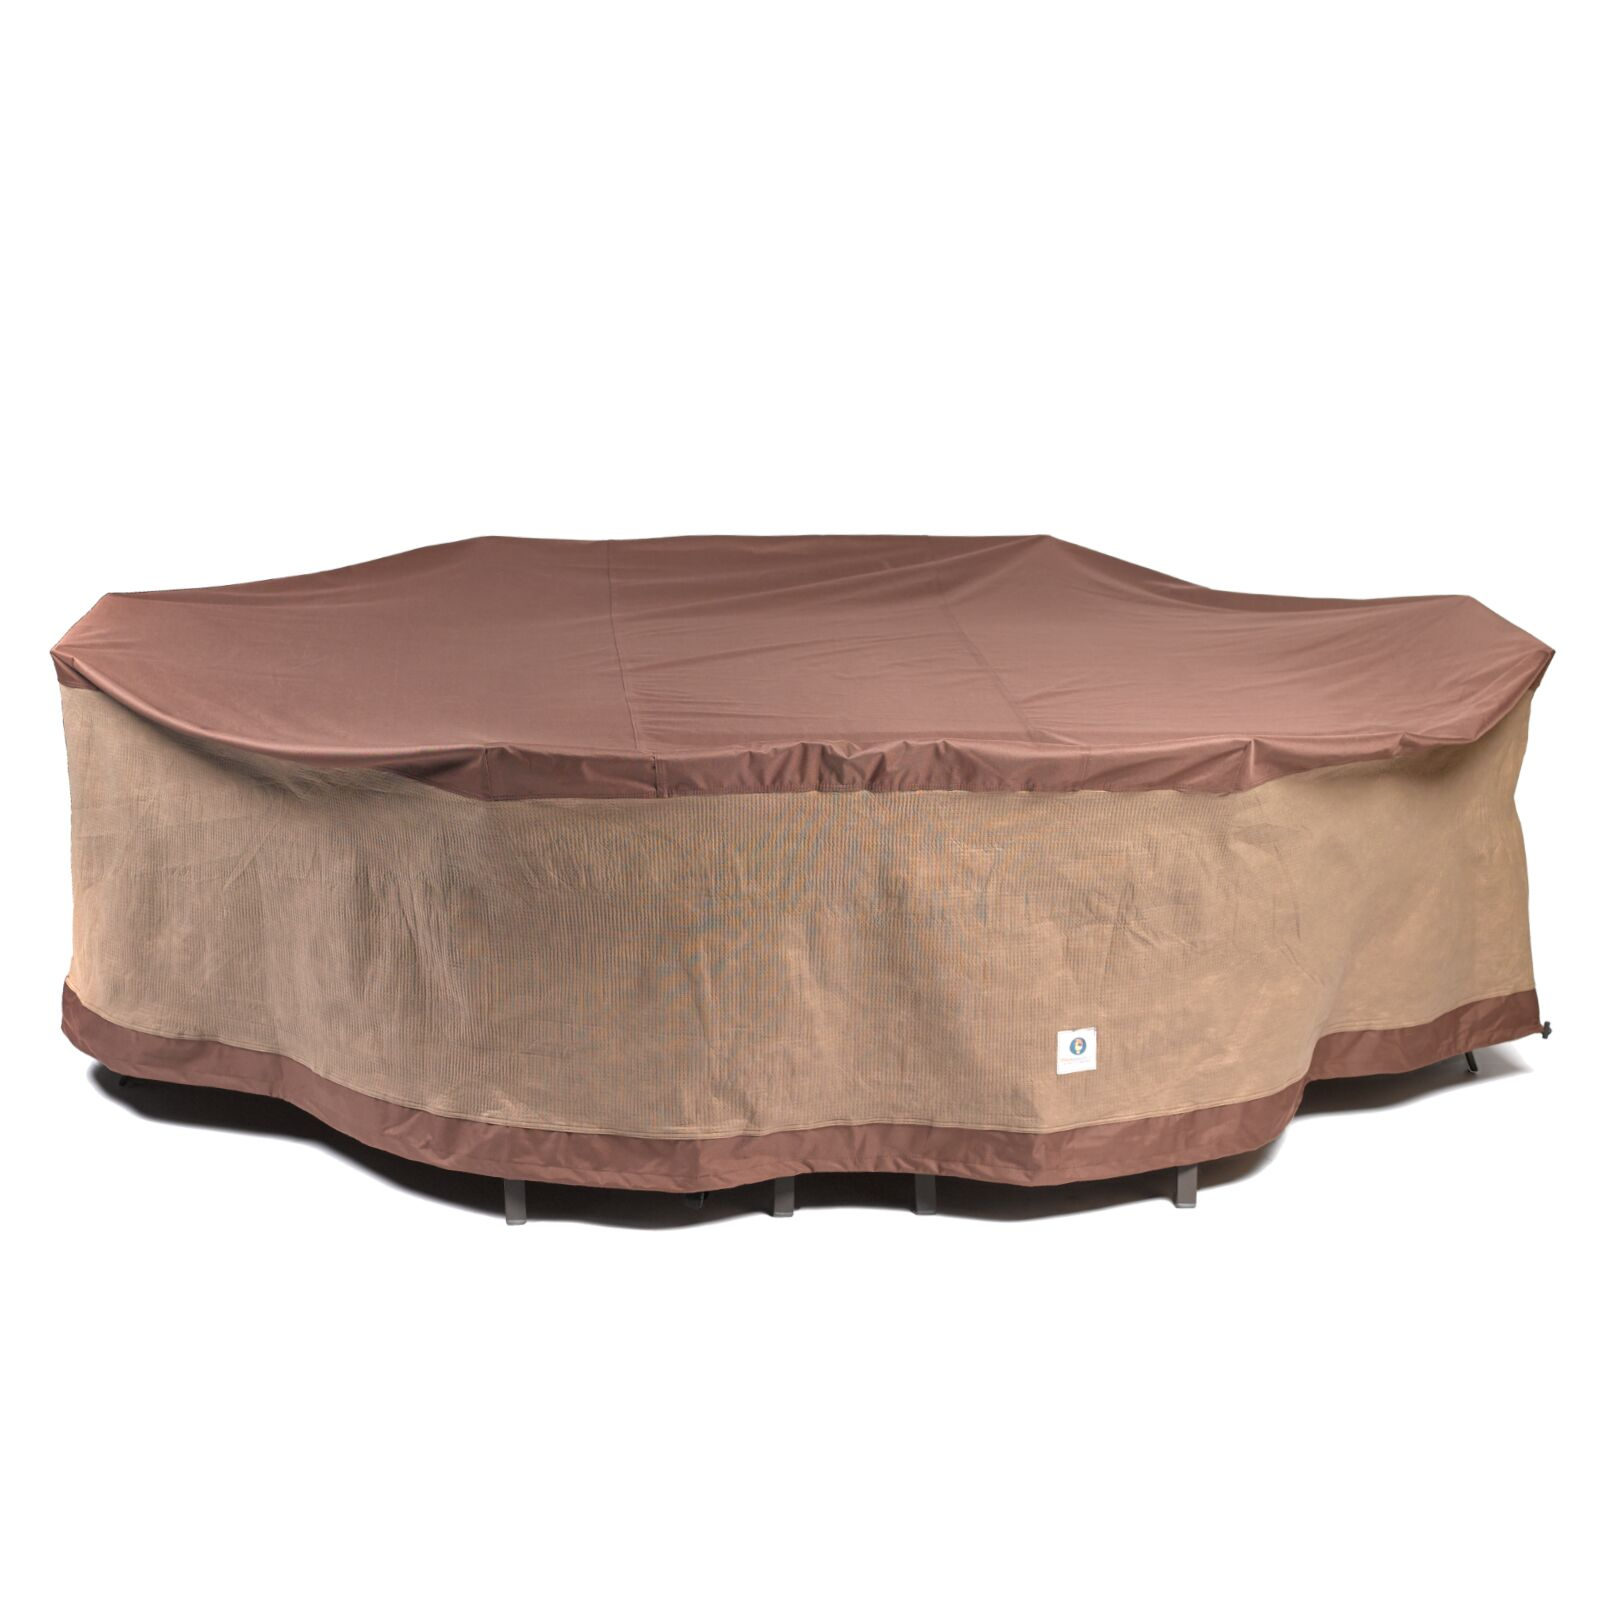 Oval Patio Table & Chairs Cover Size: 84